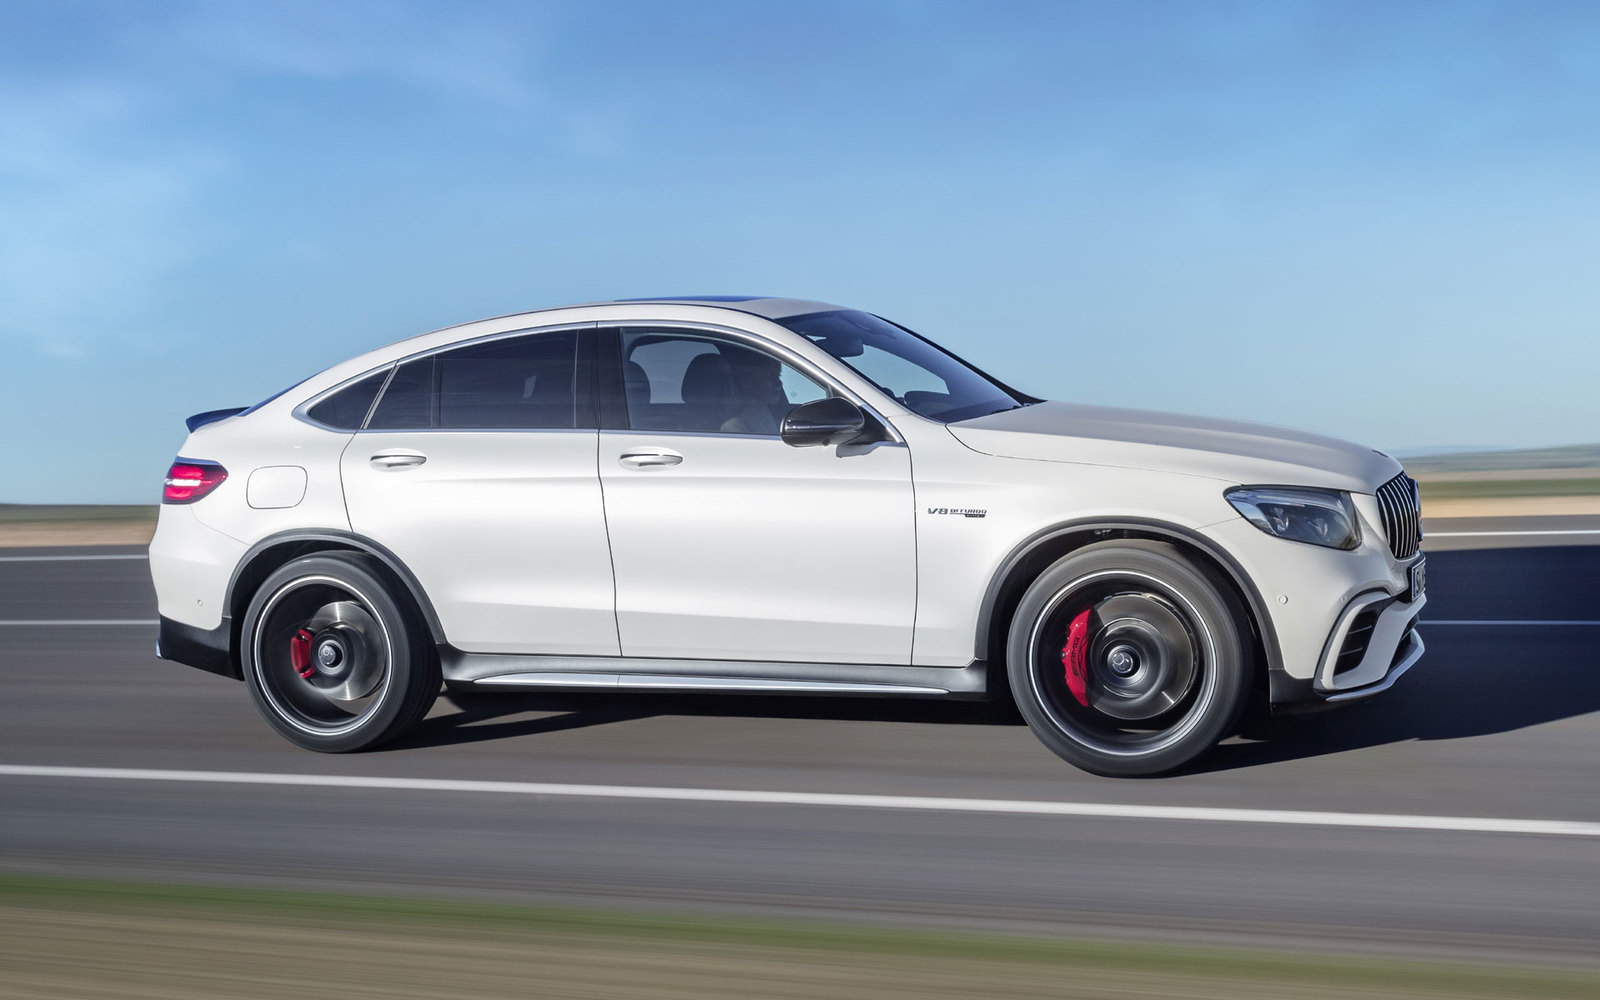 Mercedes GLC AMG 63 Coupé